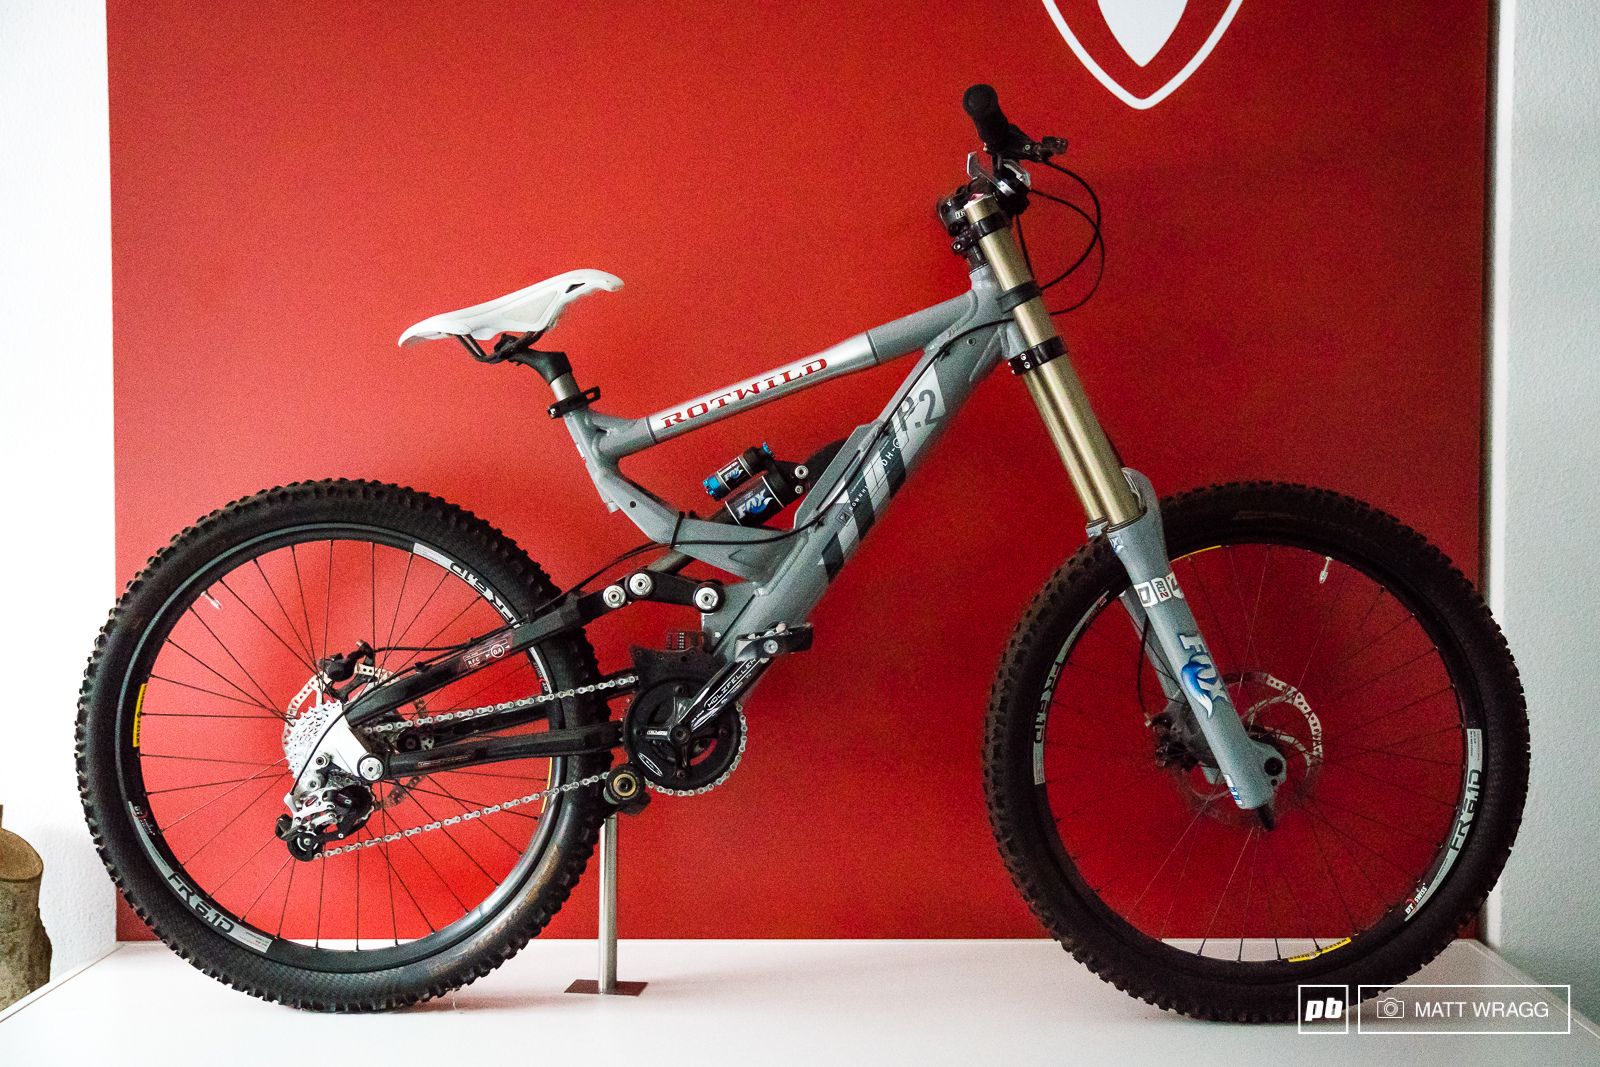 This was Rotwild s last World Cup DH bike from around 2007. It may not be as wild as their RDH1 prototype but this frame has adjustable geometry an air shock and even a carbon fibre rear end. While it may look dated now these kind of details prefigure the modern downhill bike.